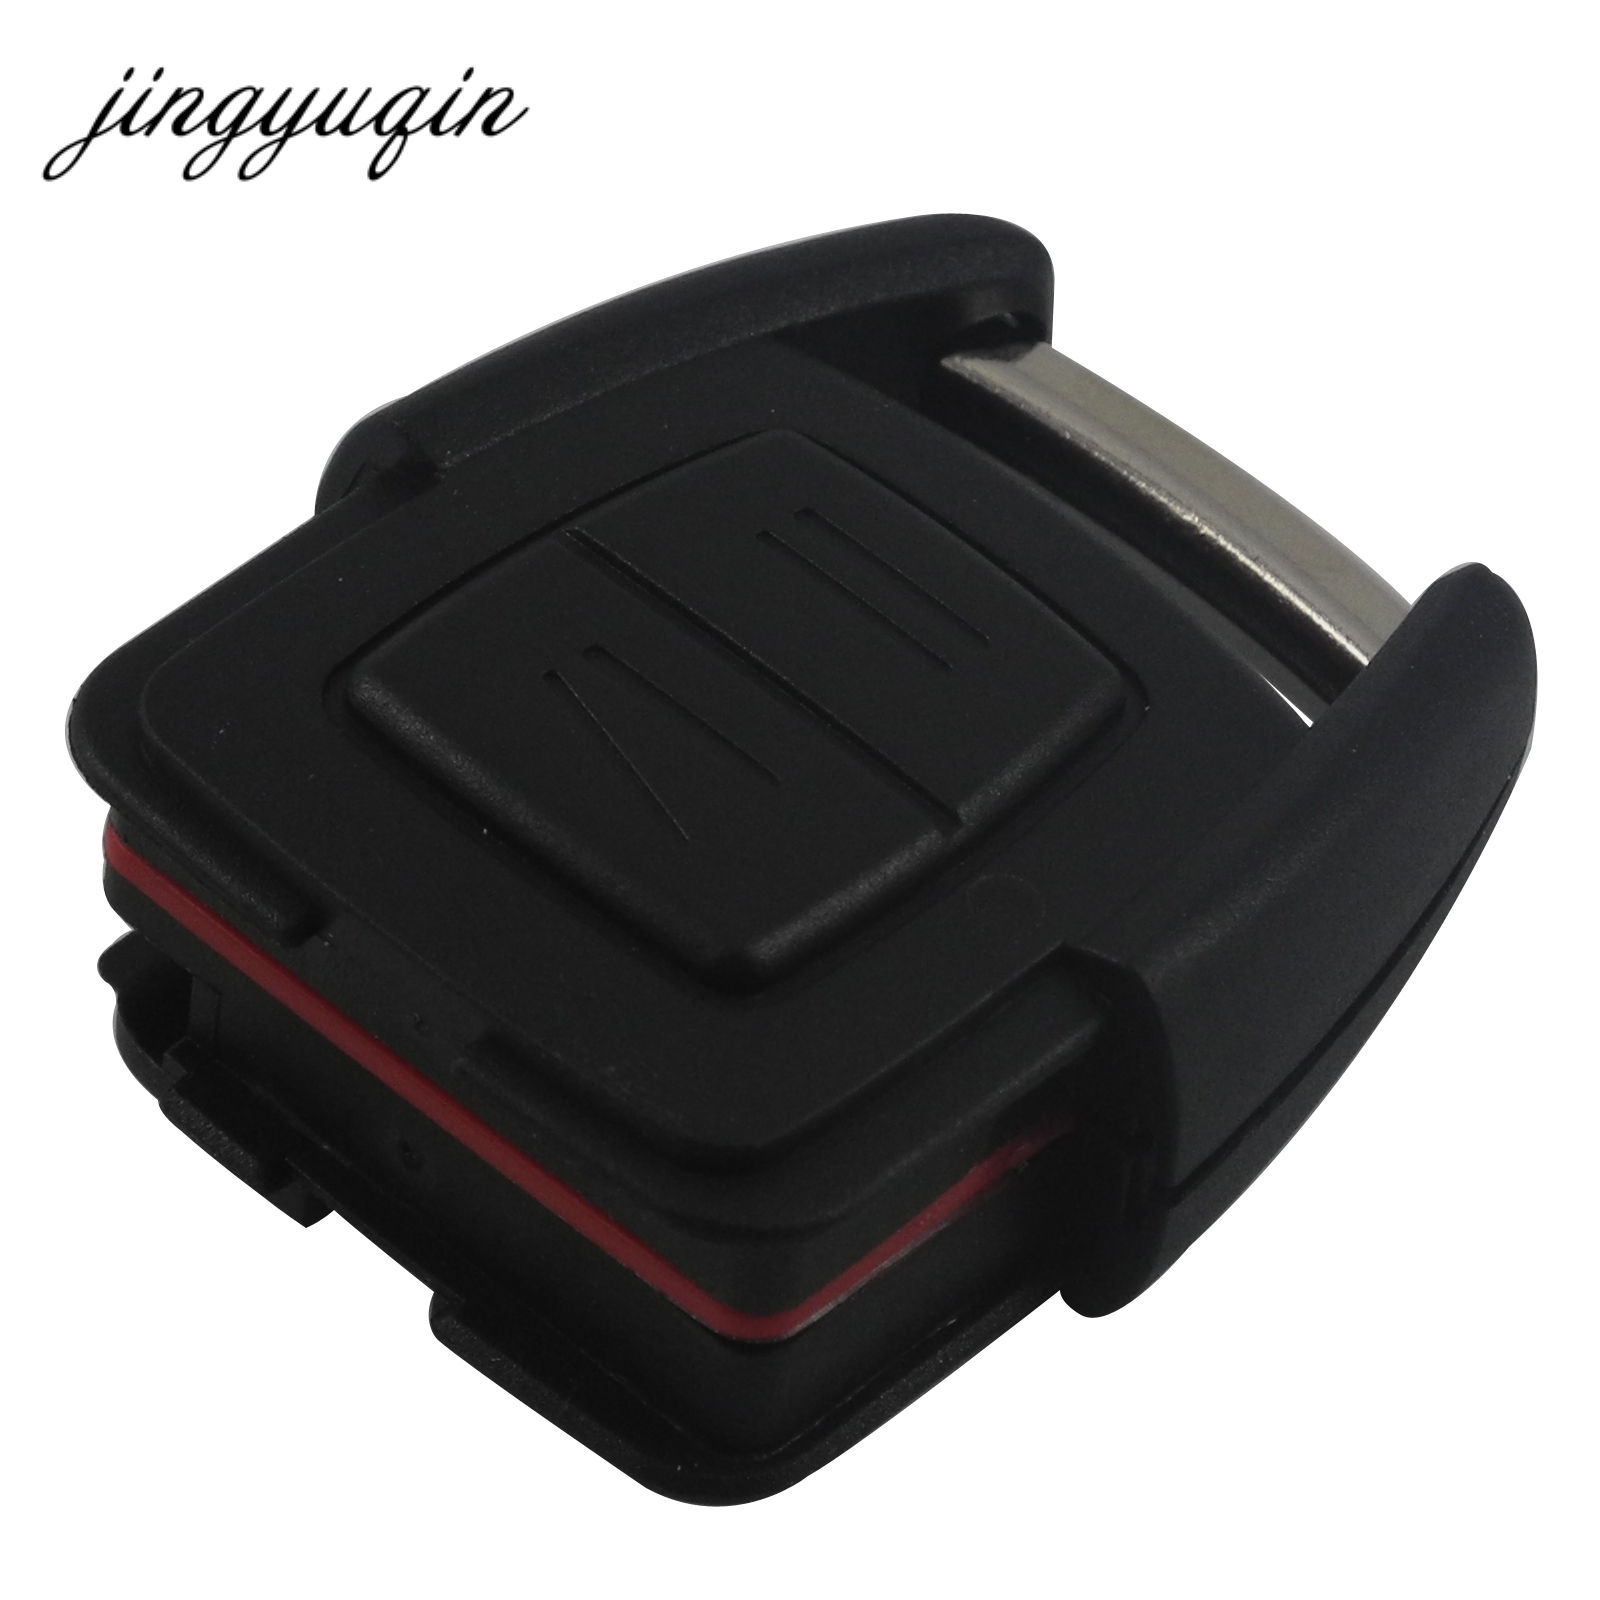 jingyuqin 2 Buttons Remote Car Key Shell for Vauxhall Opel Astra Zafira Omega Vectra No Chip Uncut Blade Car Key Case Fobjingyuqin 2 Buttons Remote Car Key Shell for Vauxhall Opel Astra Zafira Omega Vectra No Chip Uncut Blade Car Key Case Fob